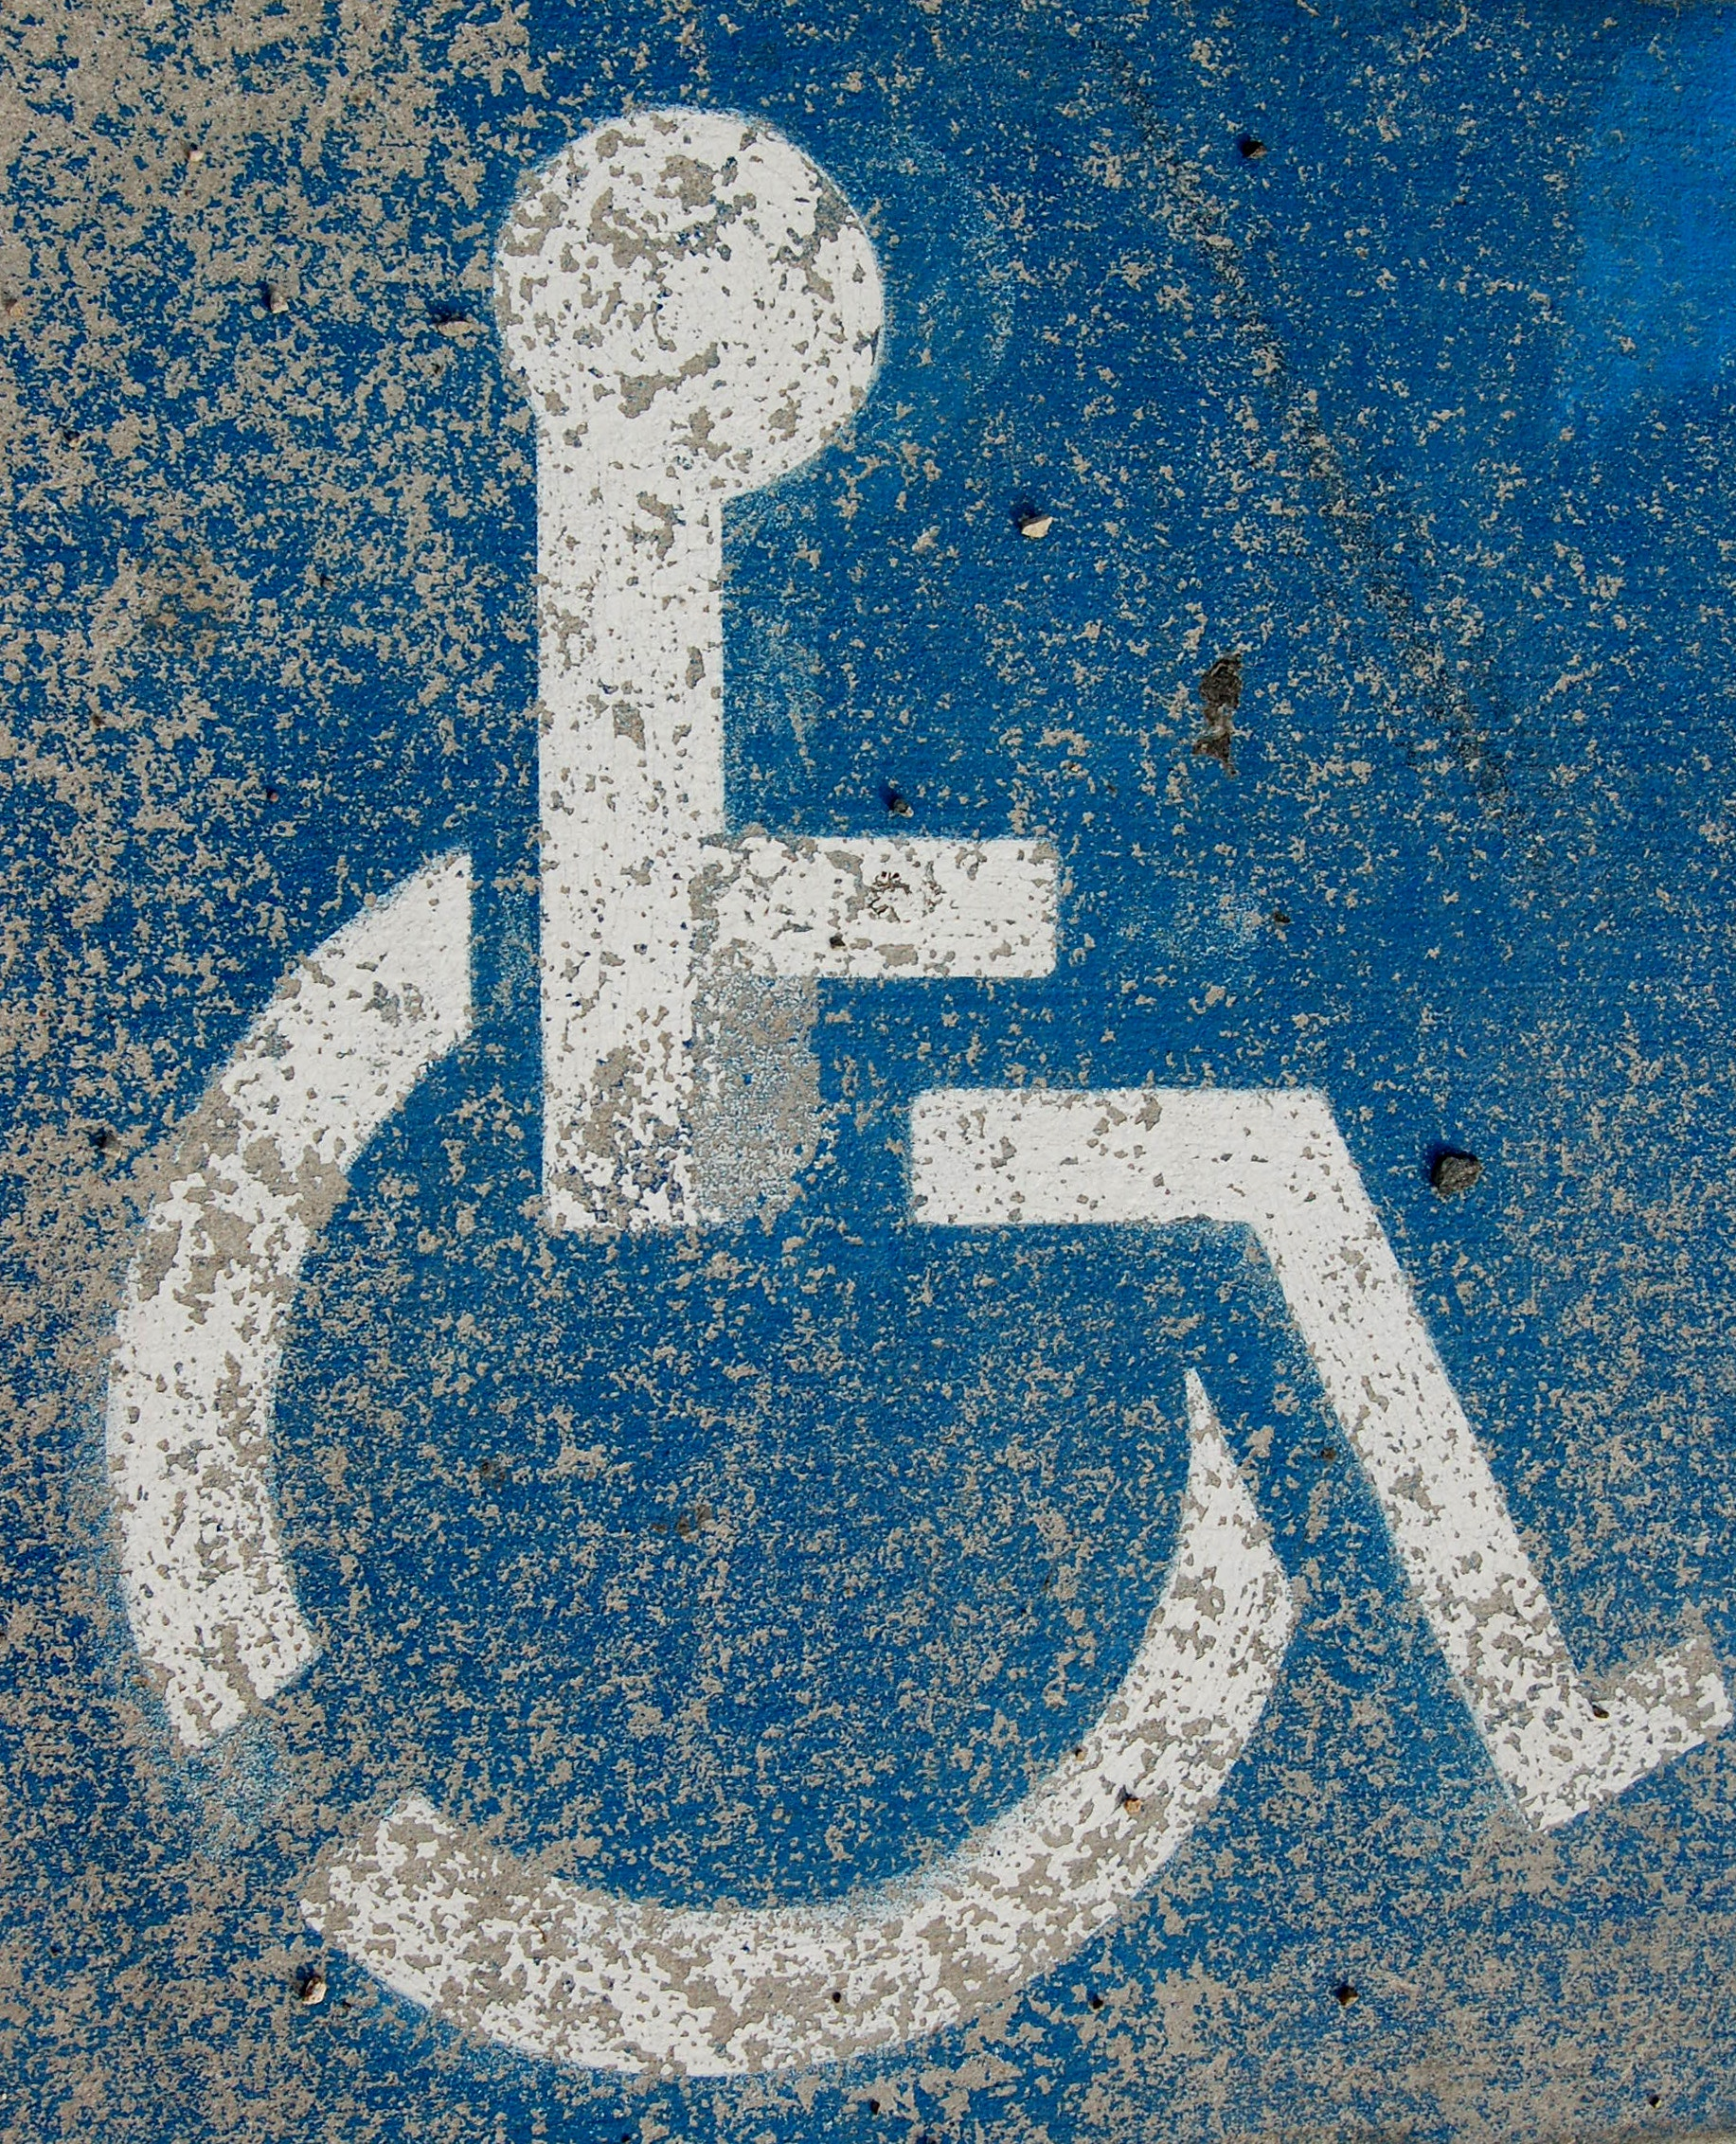 A disability parking spot is run down and worse for wear.